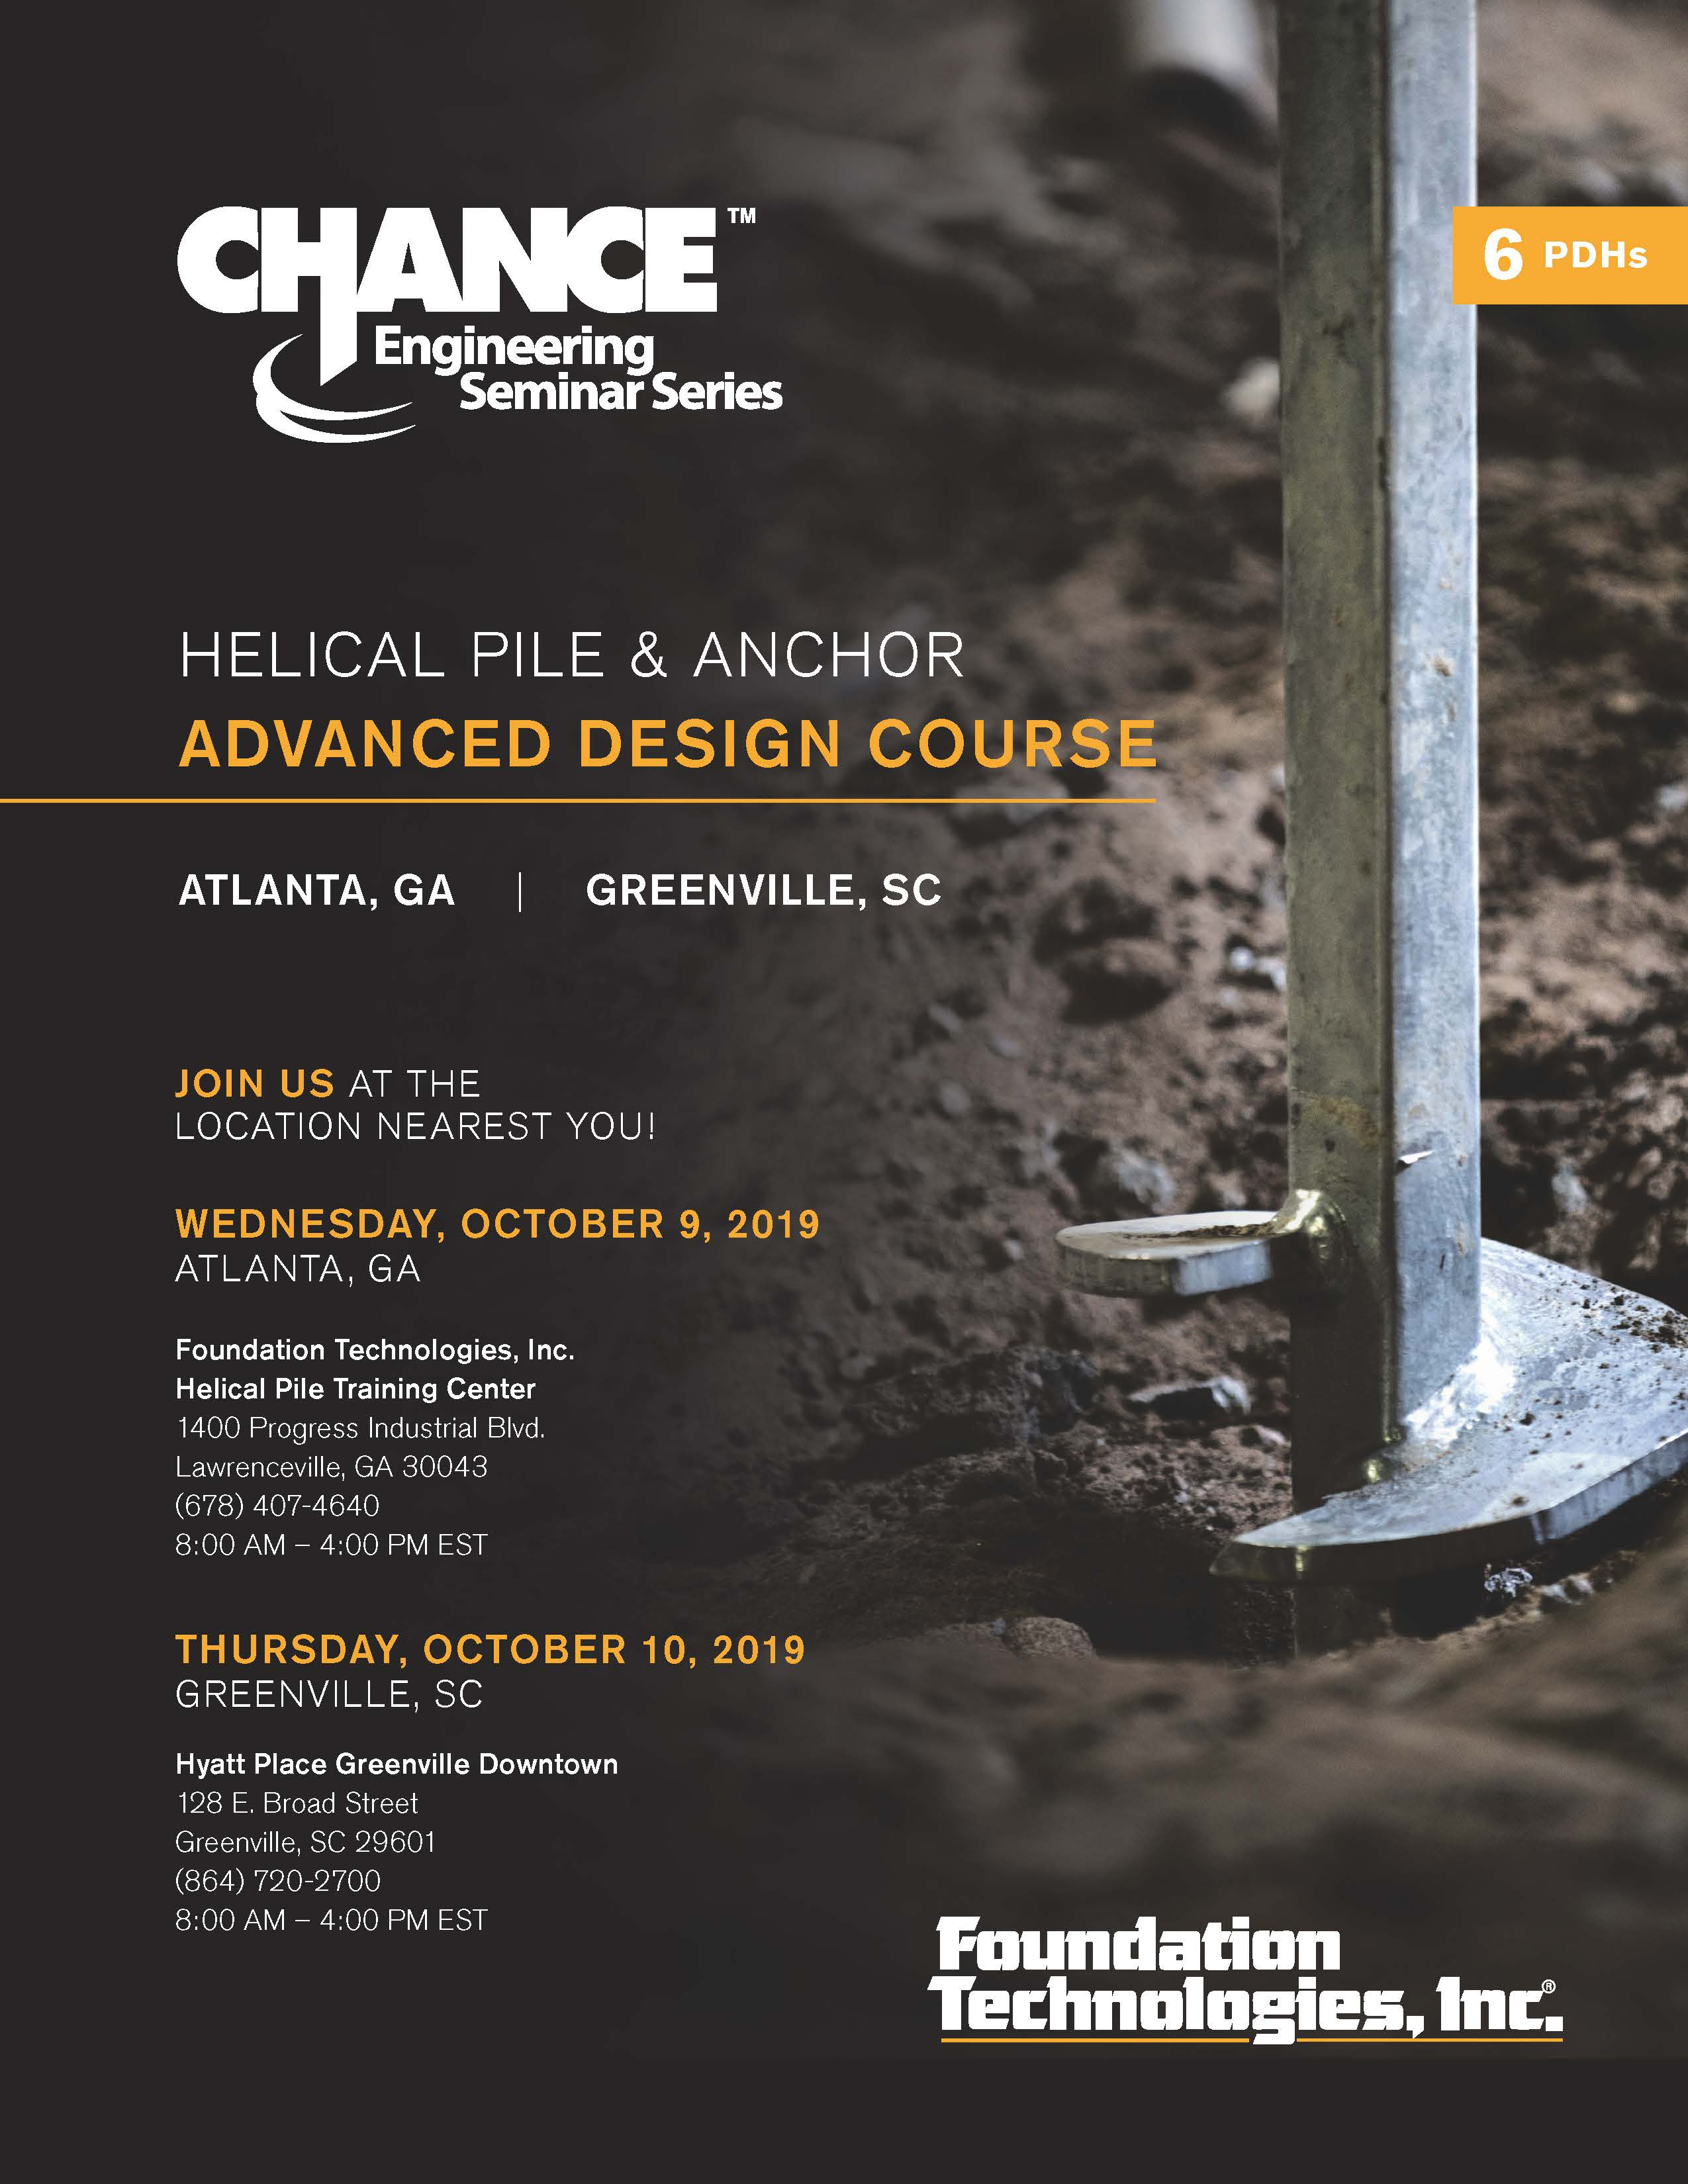 CHANCE® Helical Pile & Anchor Advanced Design Course